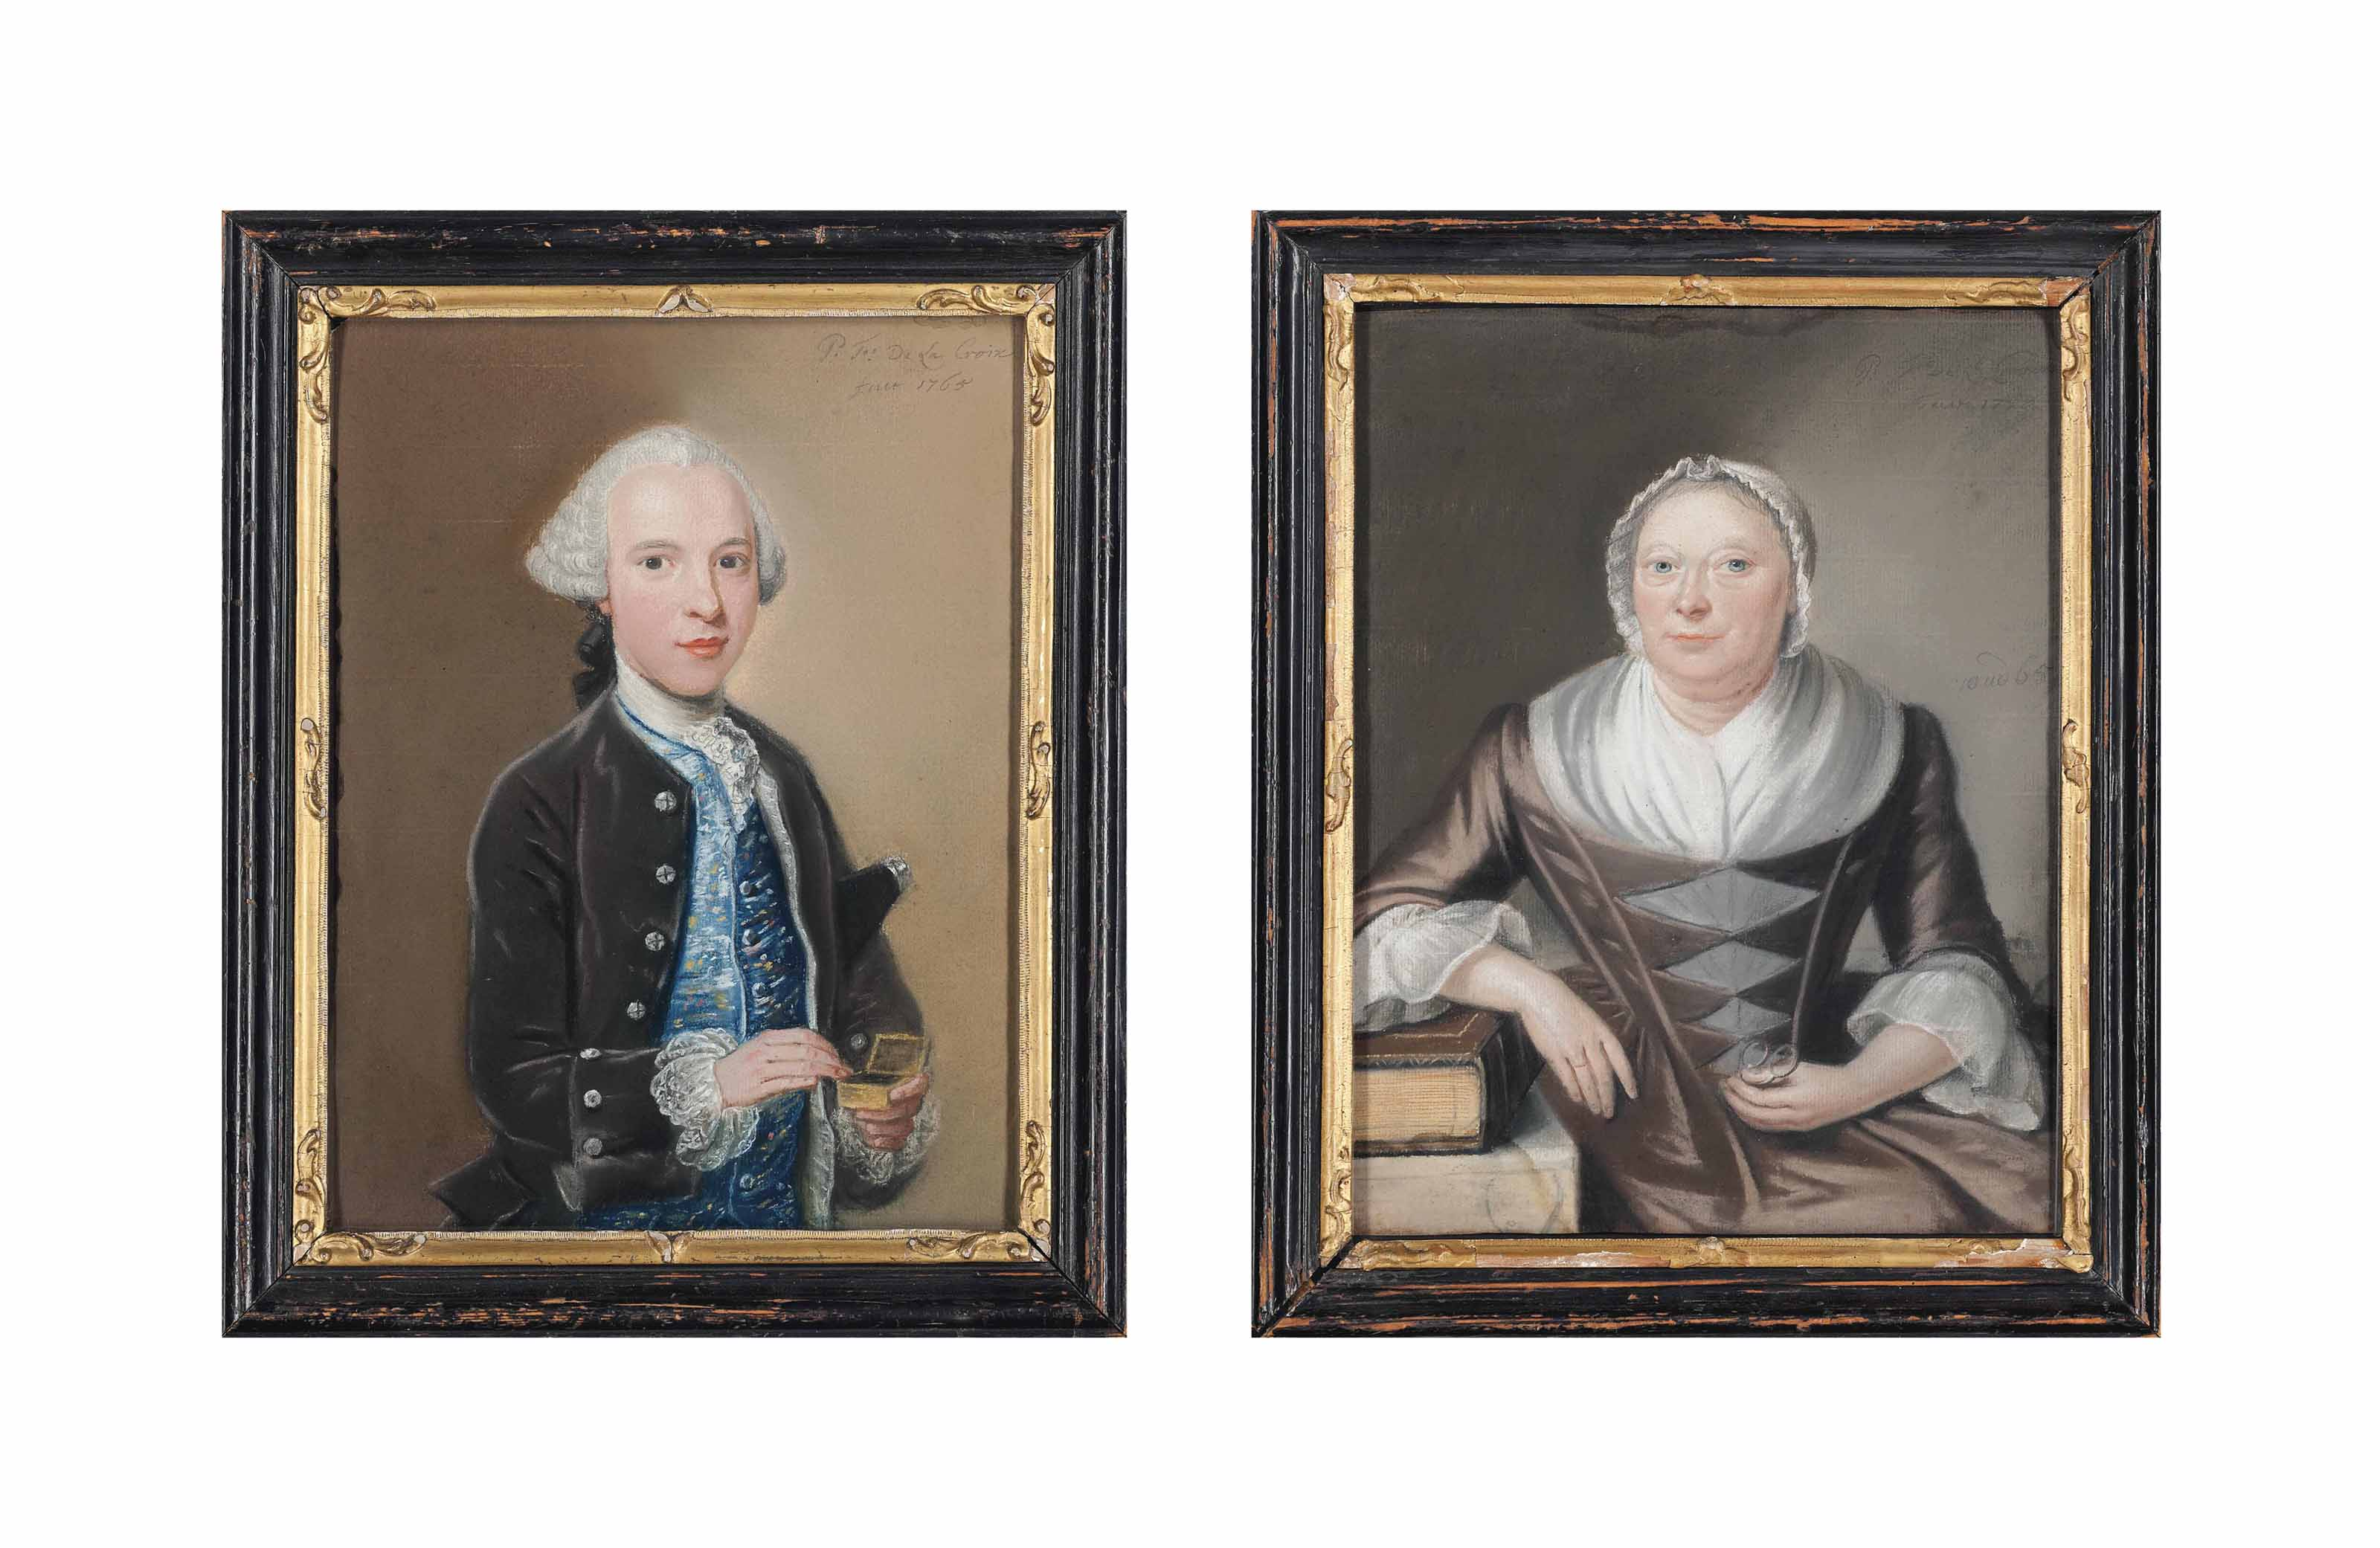 Portrait of Jan Jacob van Royen (1744-1773) holding a snuff box with his hat under his arm; And a portrait of a lady, also of the van Royen family, holding her glasses with her arm resting on a book